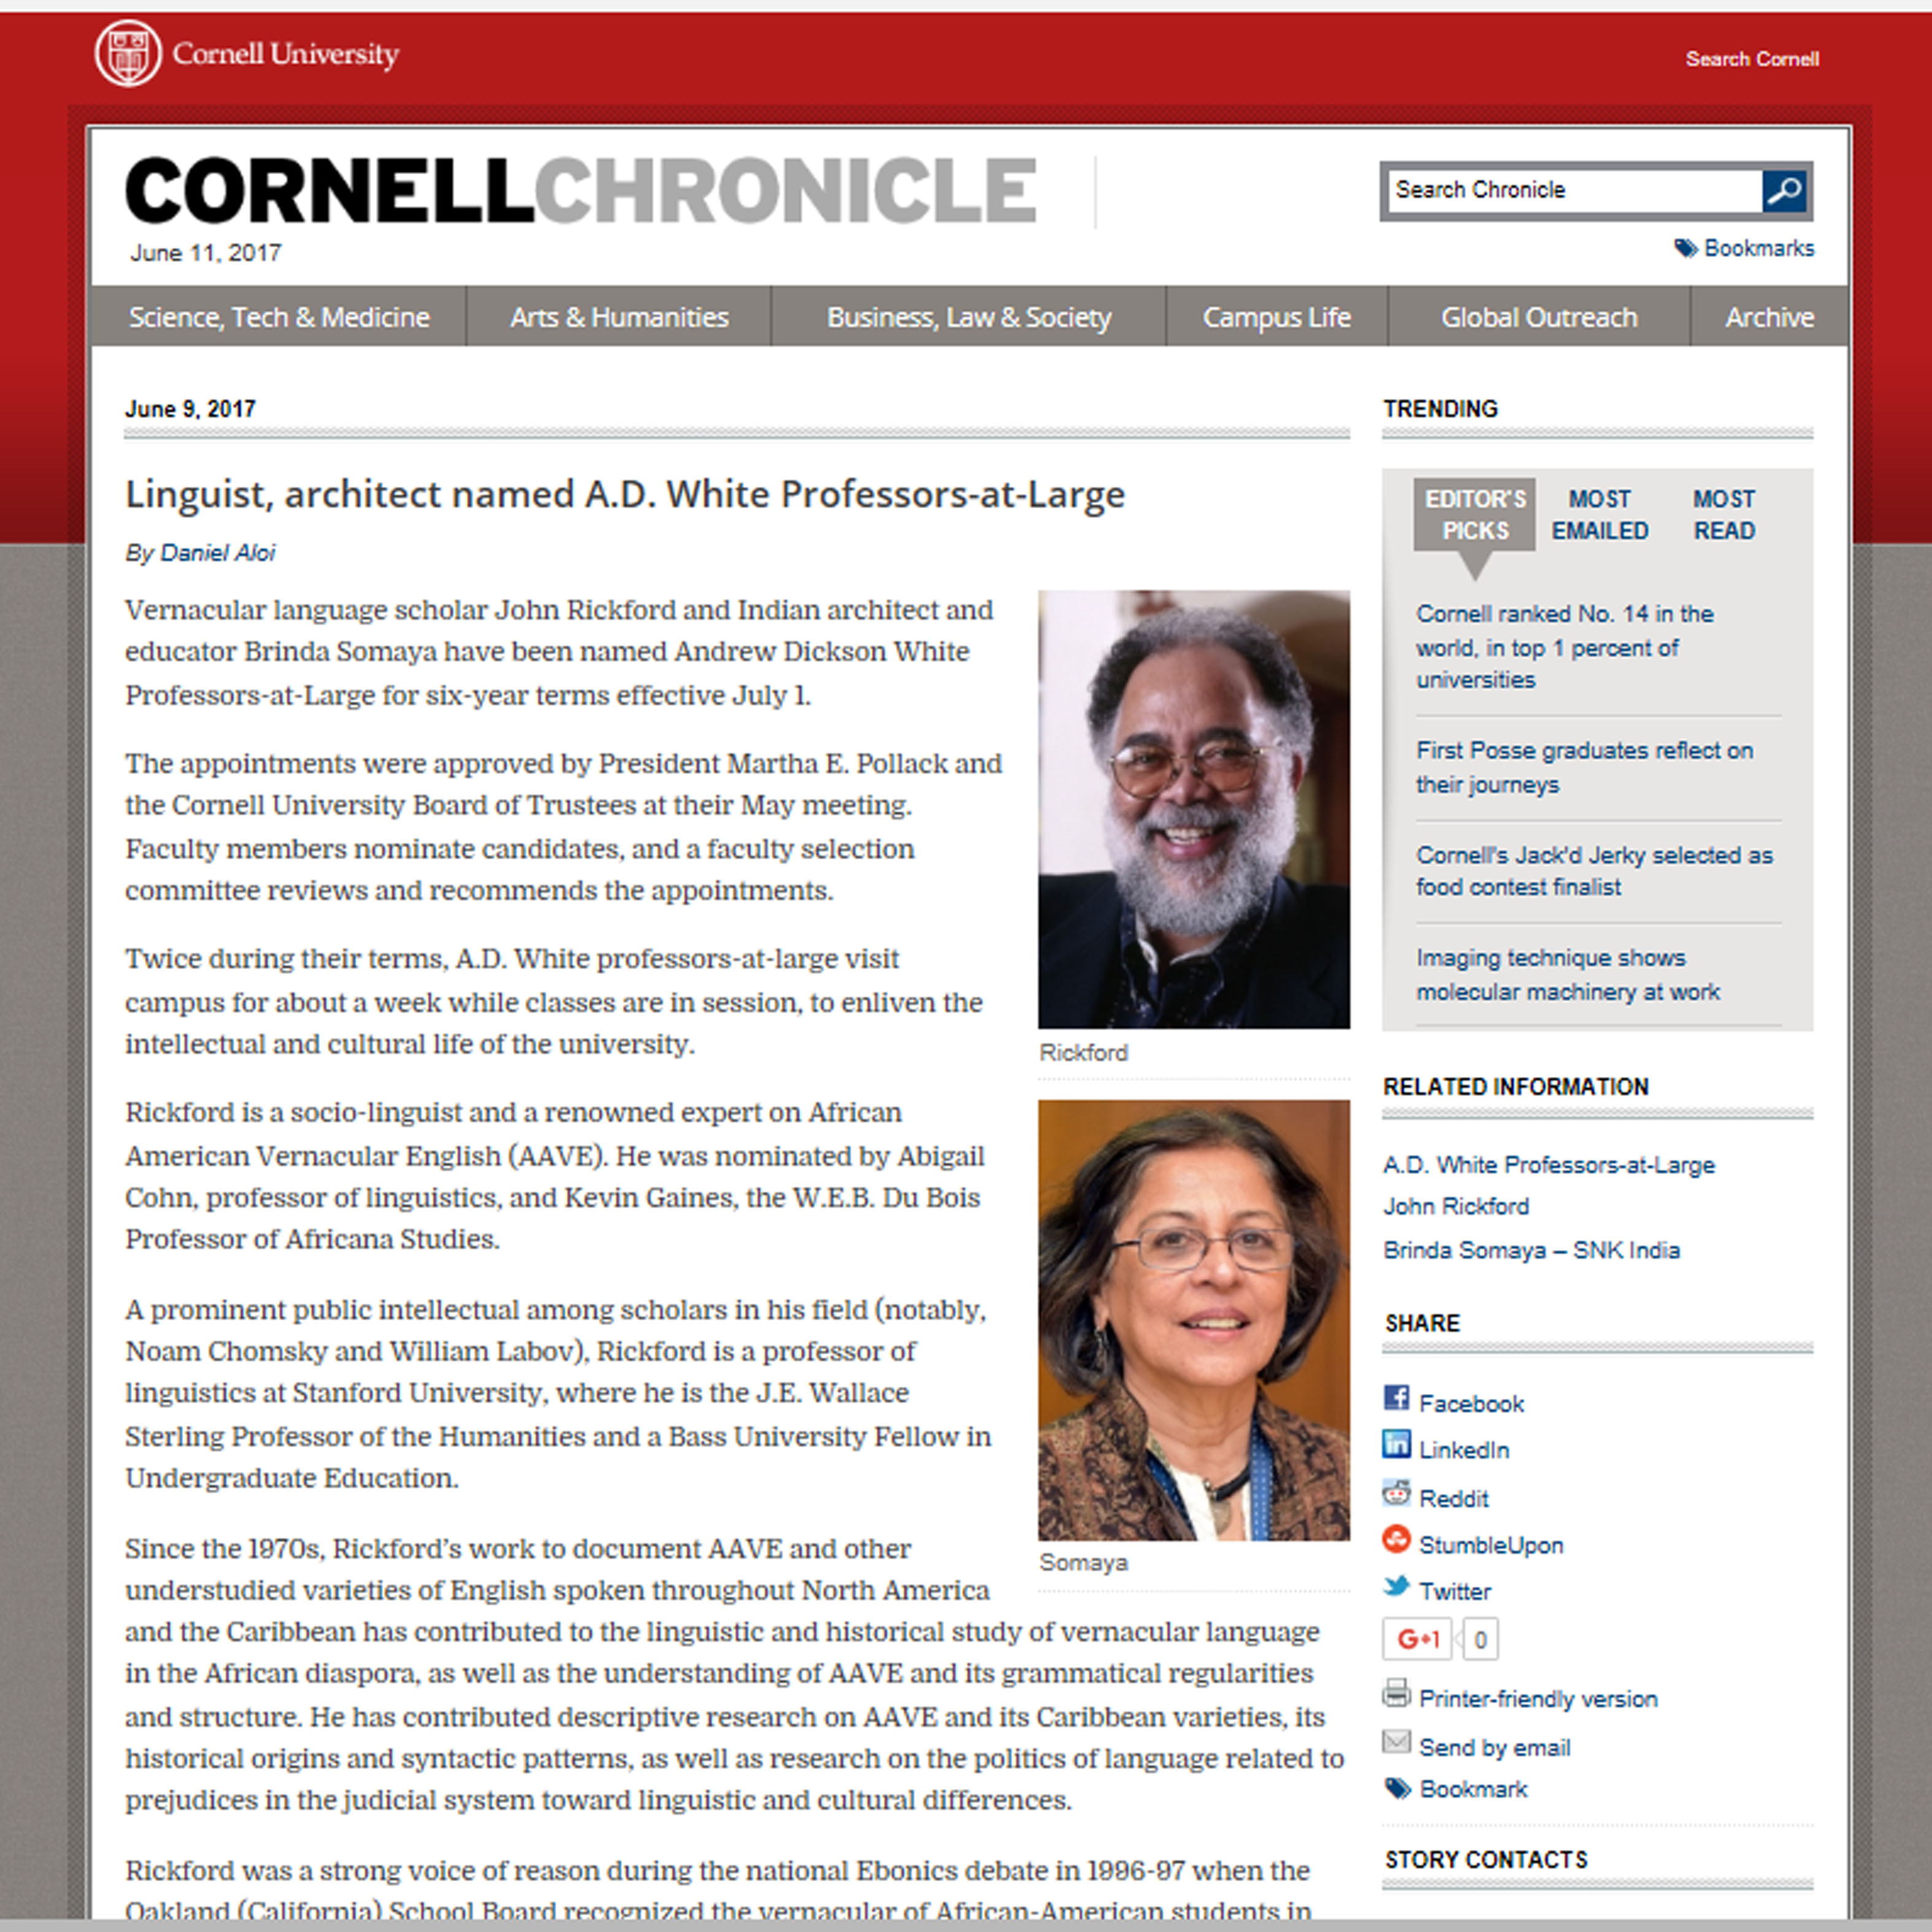 Linguist, architect named A.D. White Professors-at-Large by Daniel Alo; Cornell Corniche, Cornell University USA - 9th June 2017.